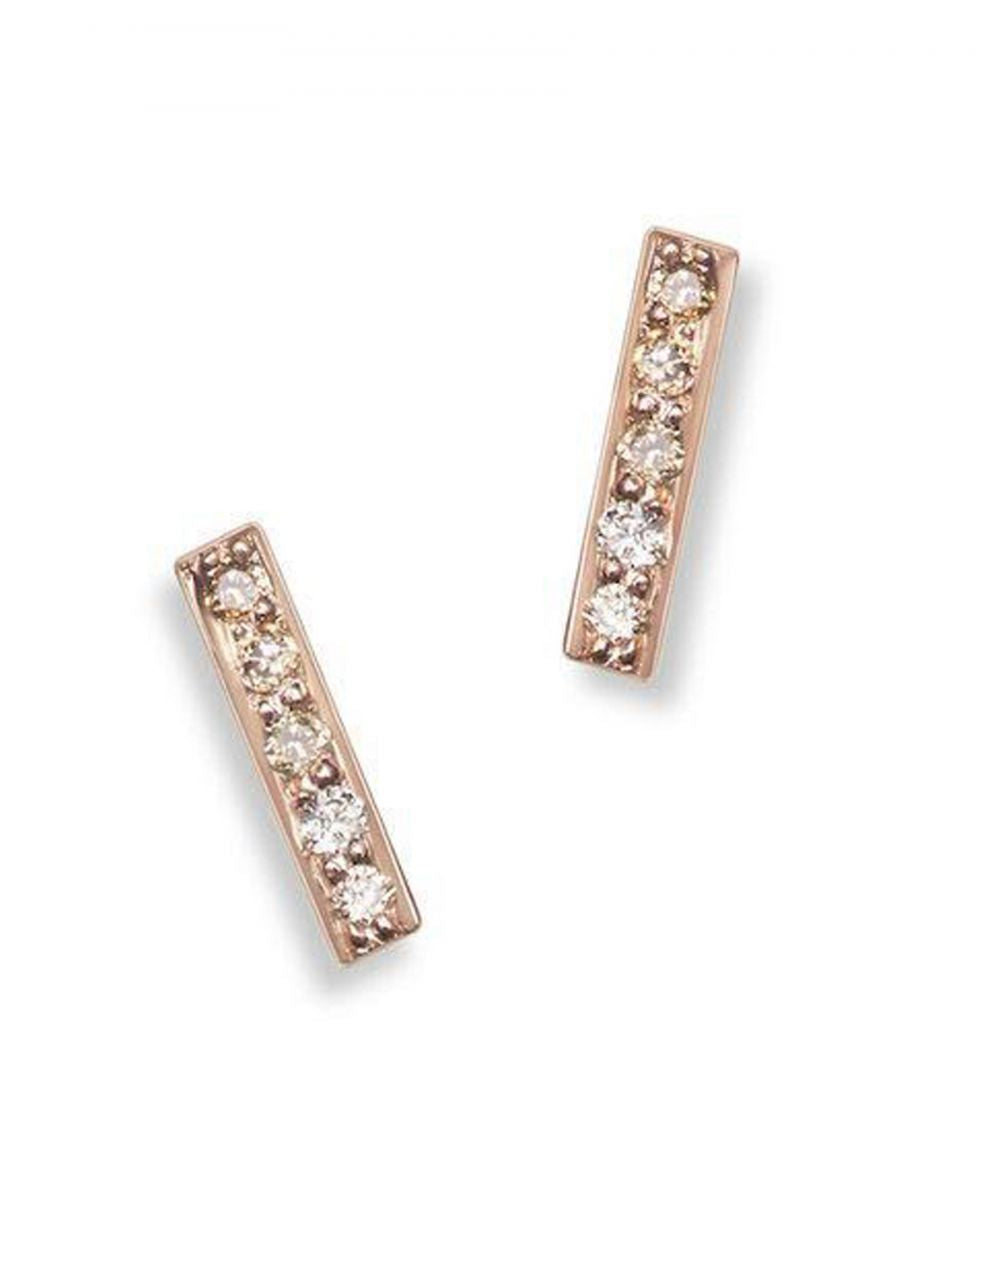 Mini Pavé Bar Stud<br /><i><small>14K Rose Gold with White Diamonds</small></i><br />